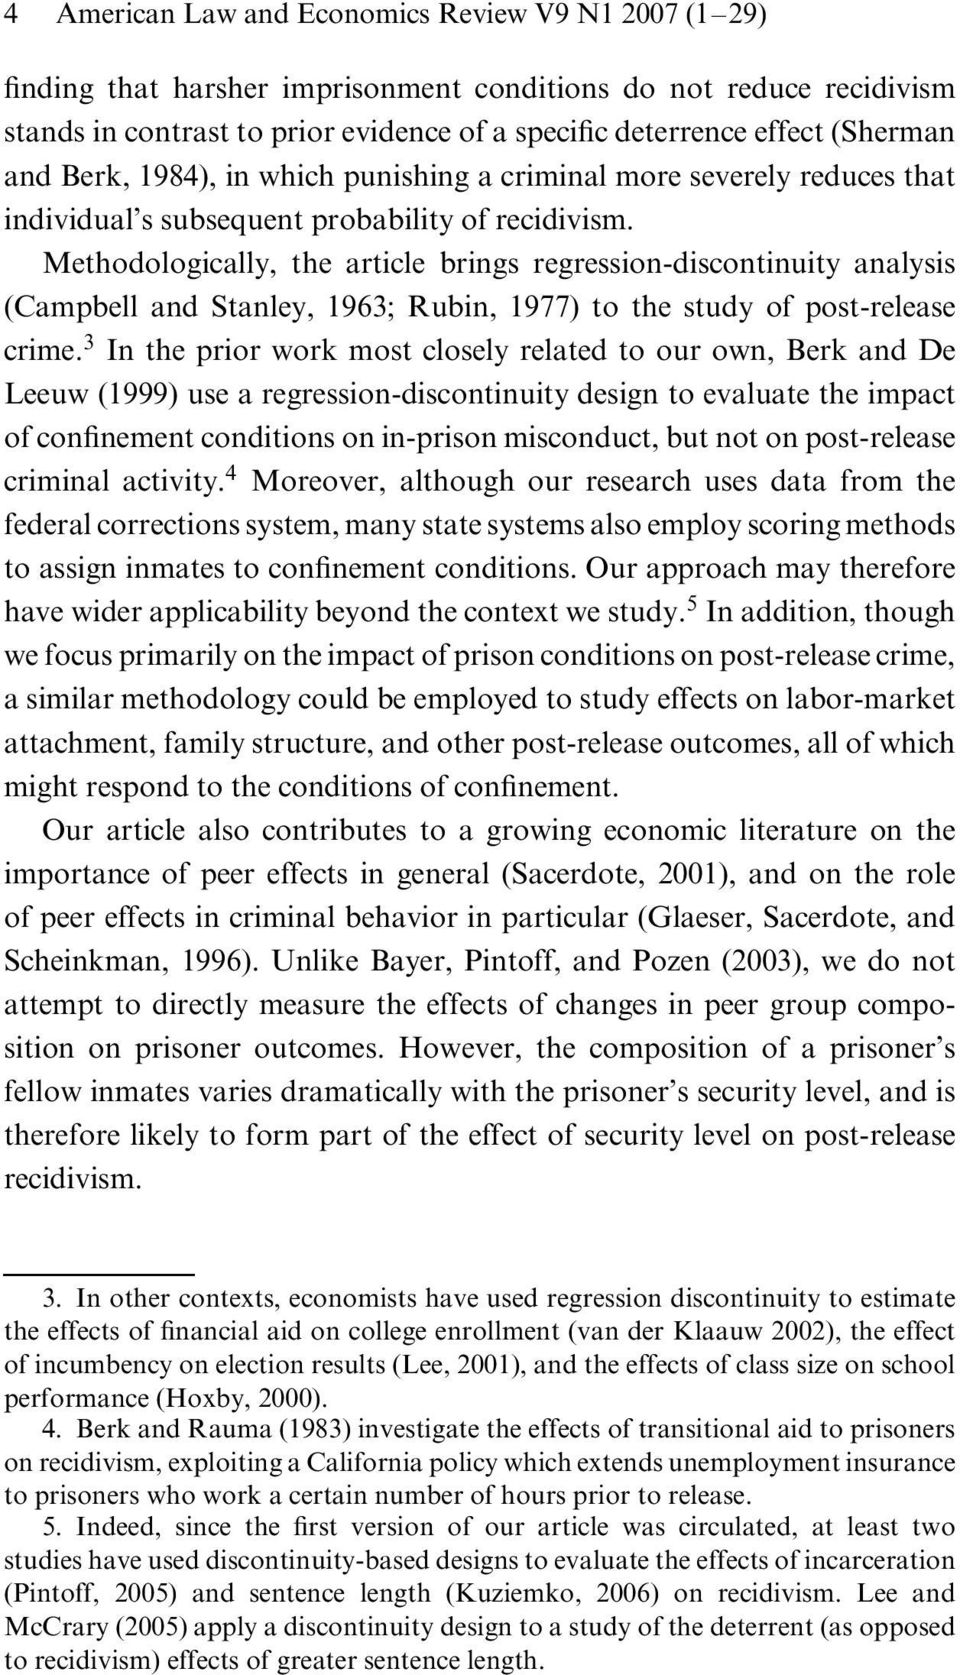 Methodologically, the article brings regression-discontinuity analysis (Campbell and Stanley, 1963; Rubin, 1977) to the study of post-release crime.